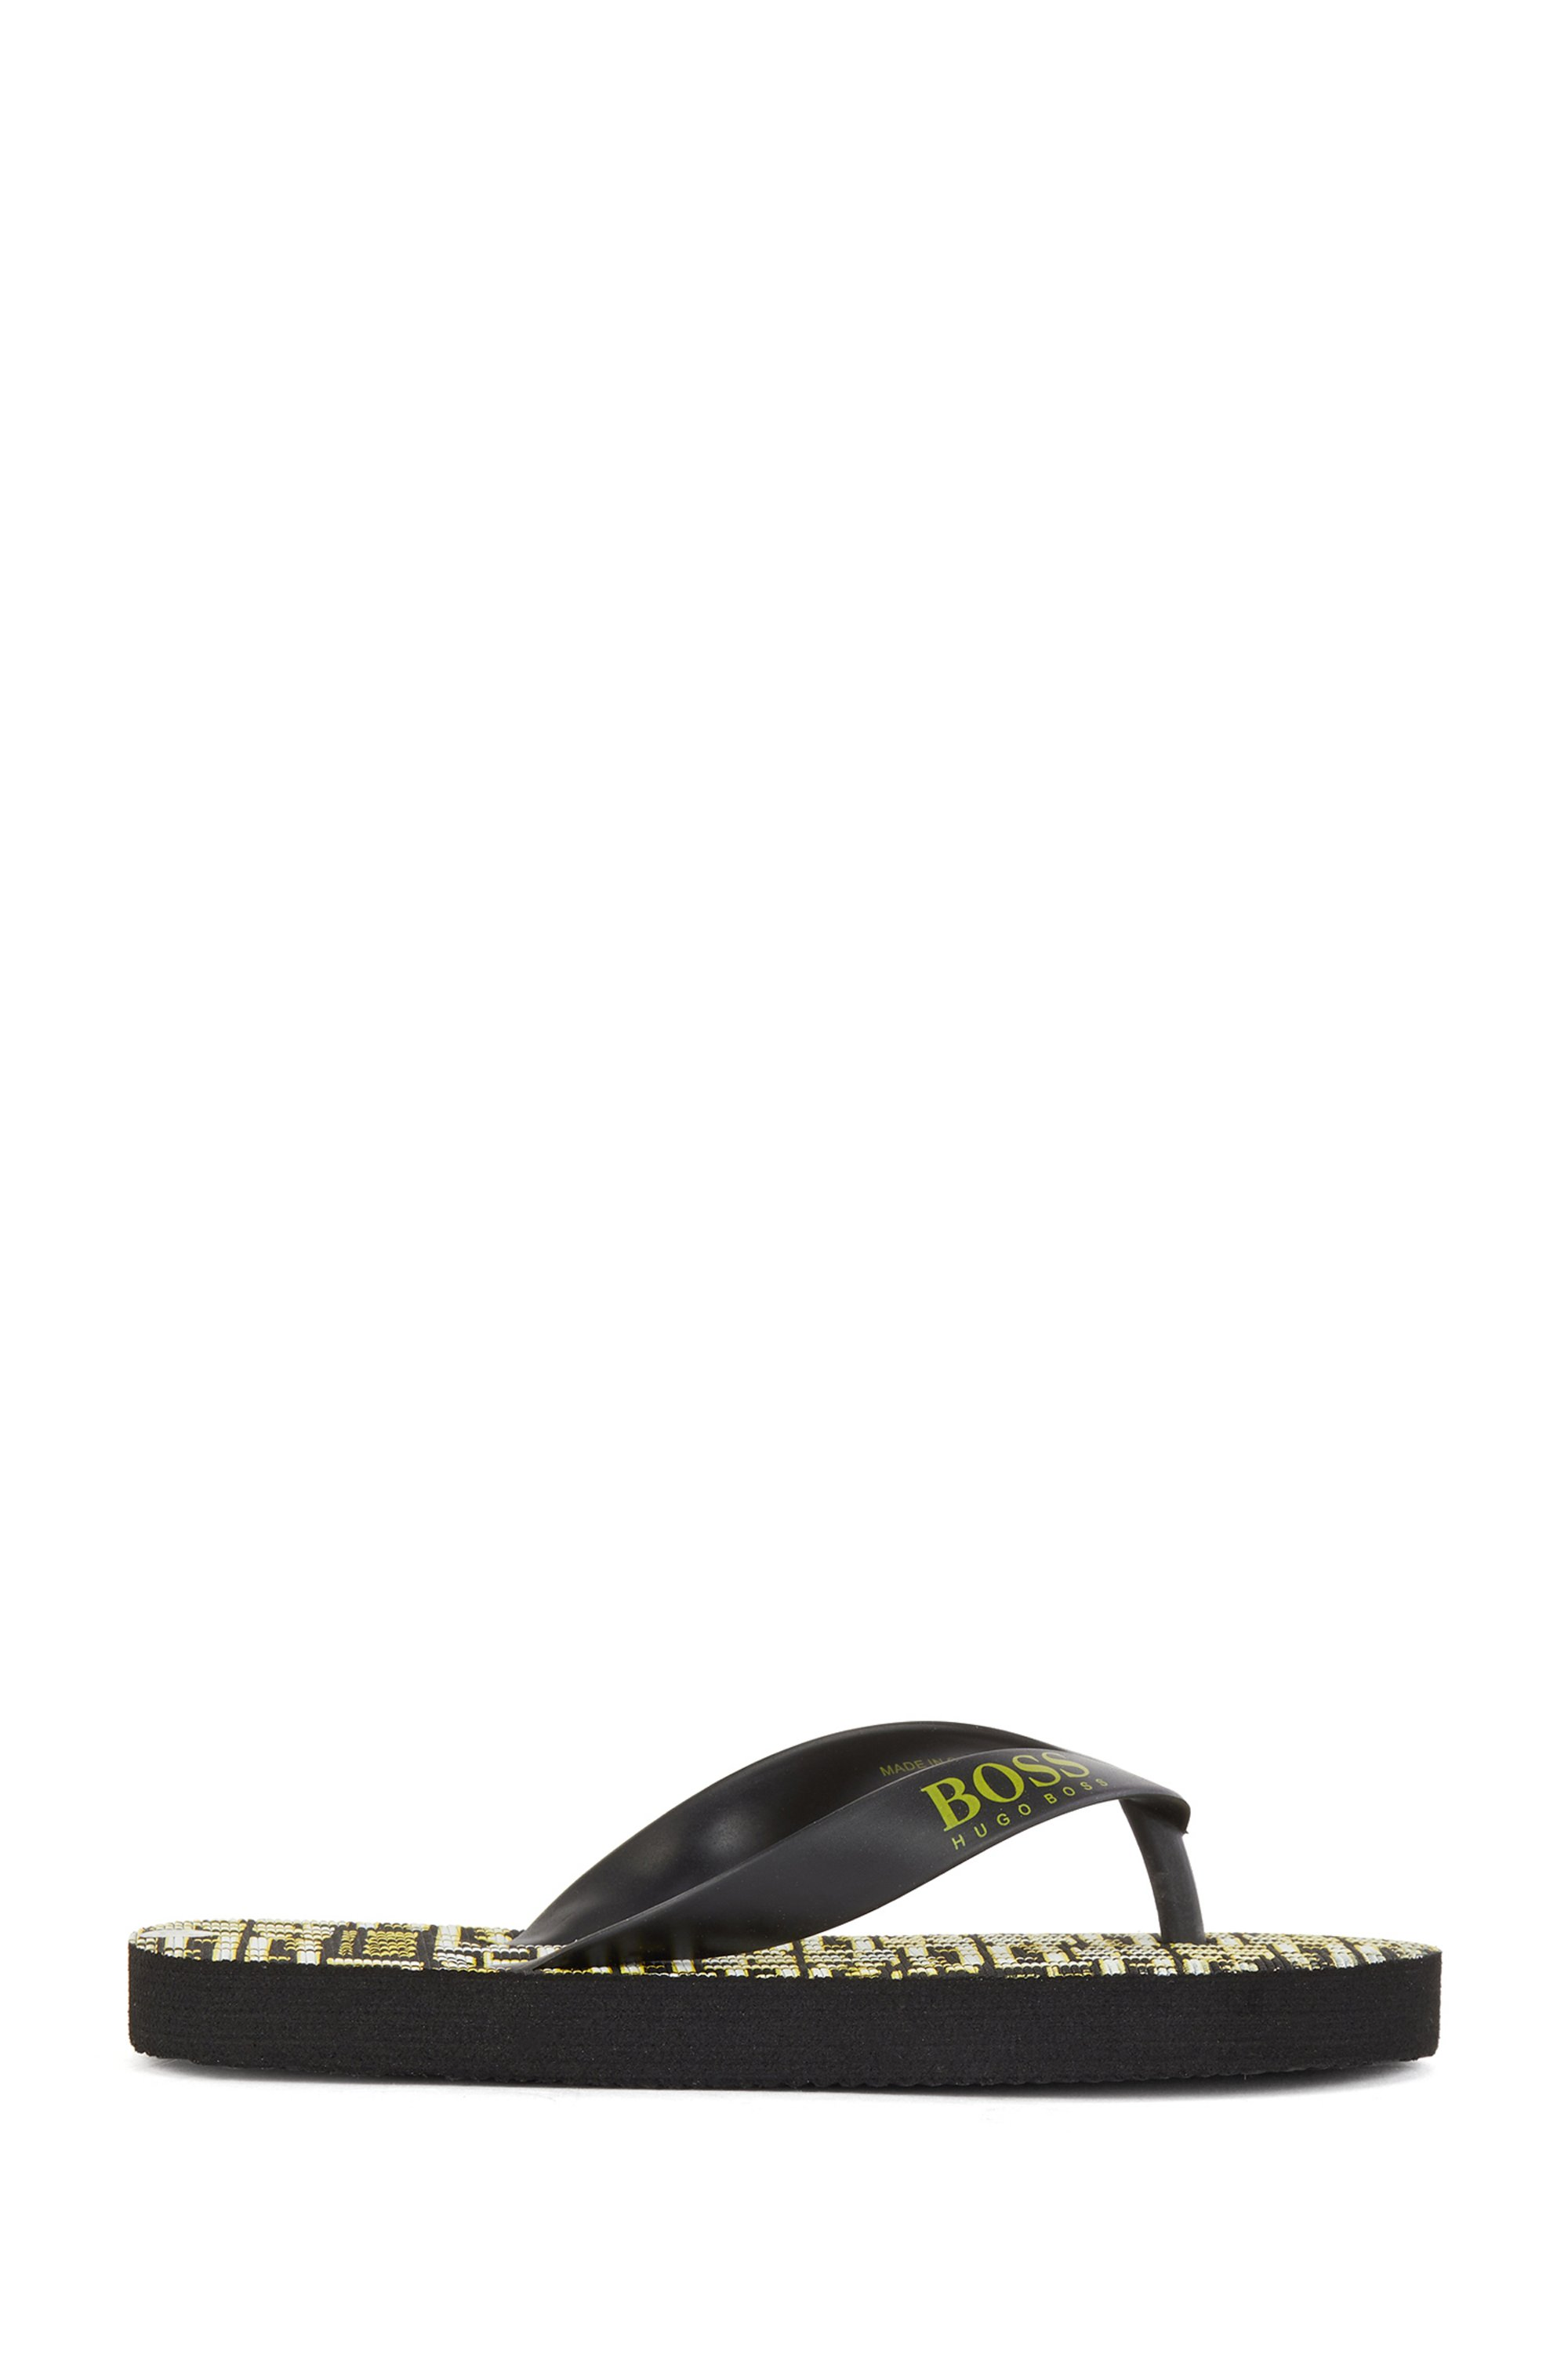 Kids' flip-flops with monogram sole and logo strap